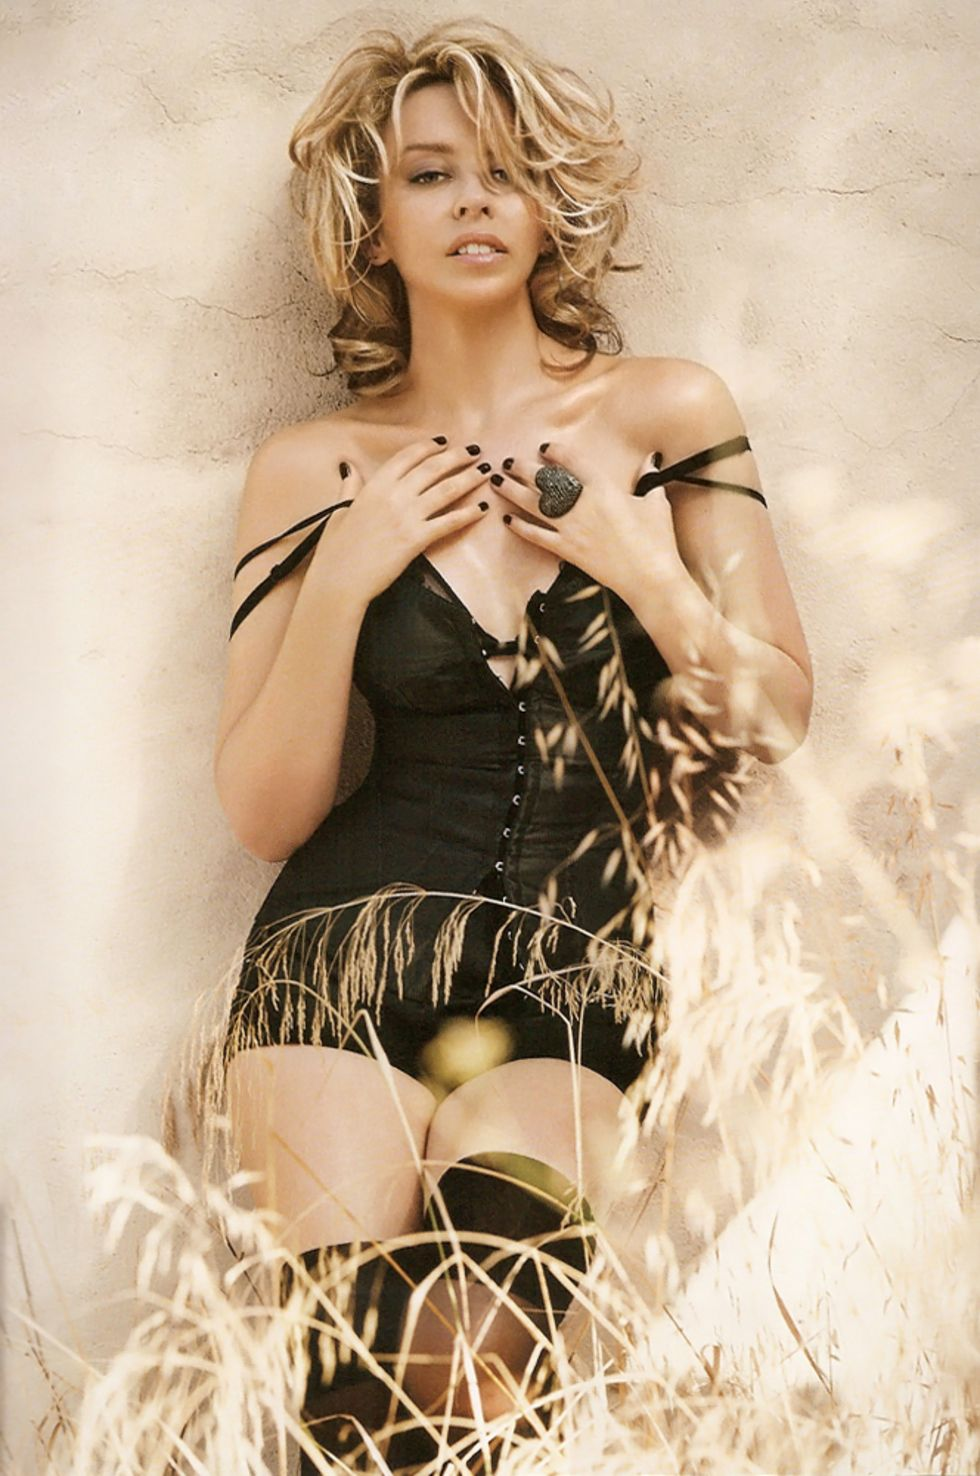 kylie-minogue-vogue-magazine-february-2010-mq-01